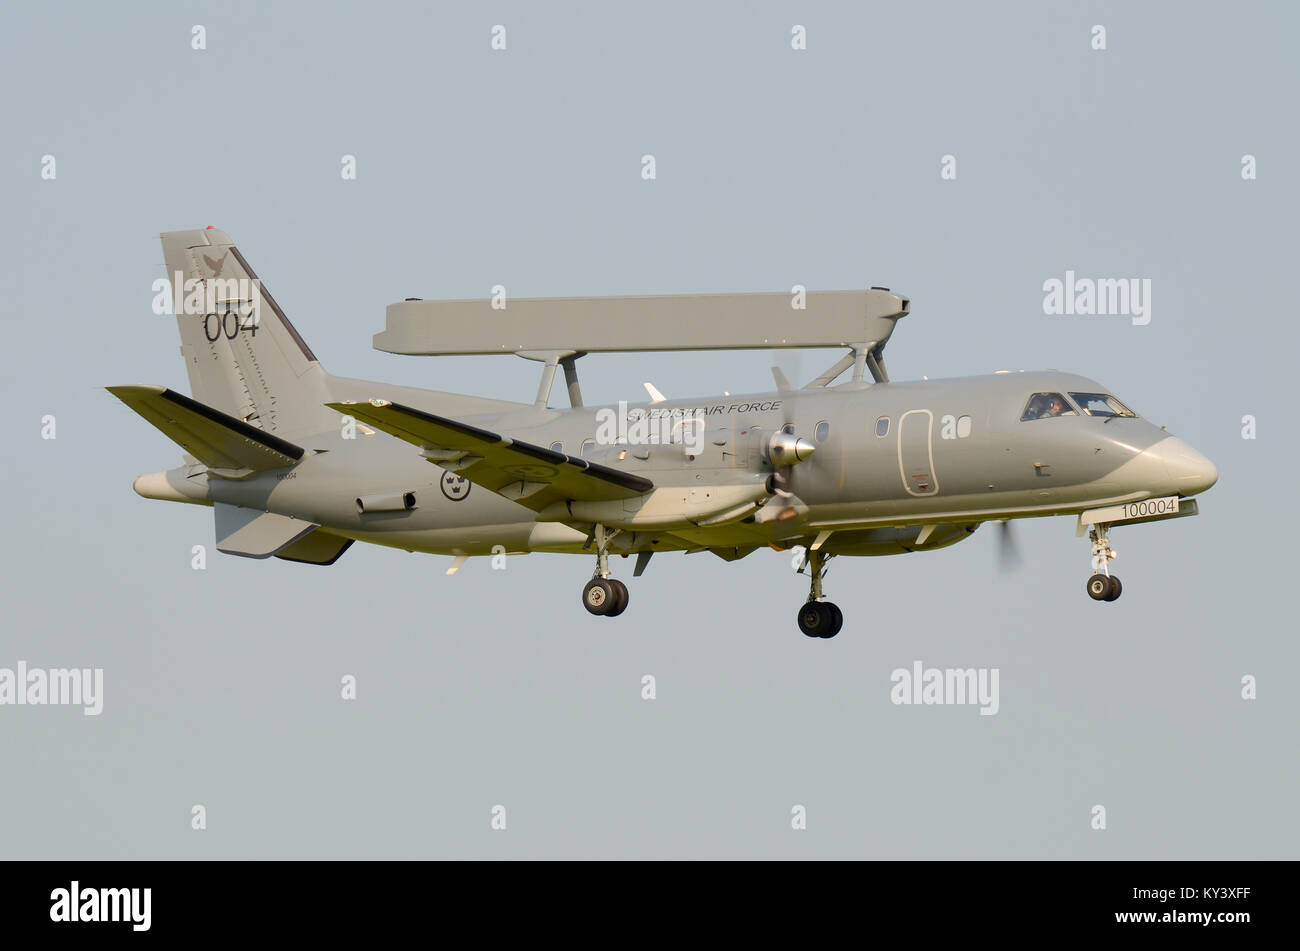 Swedish Air Force Saab 340 AEW&C S100B Argus 100004 (cn 395) Airborne Early Warning & Control aircraft coming - Stock Image